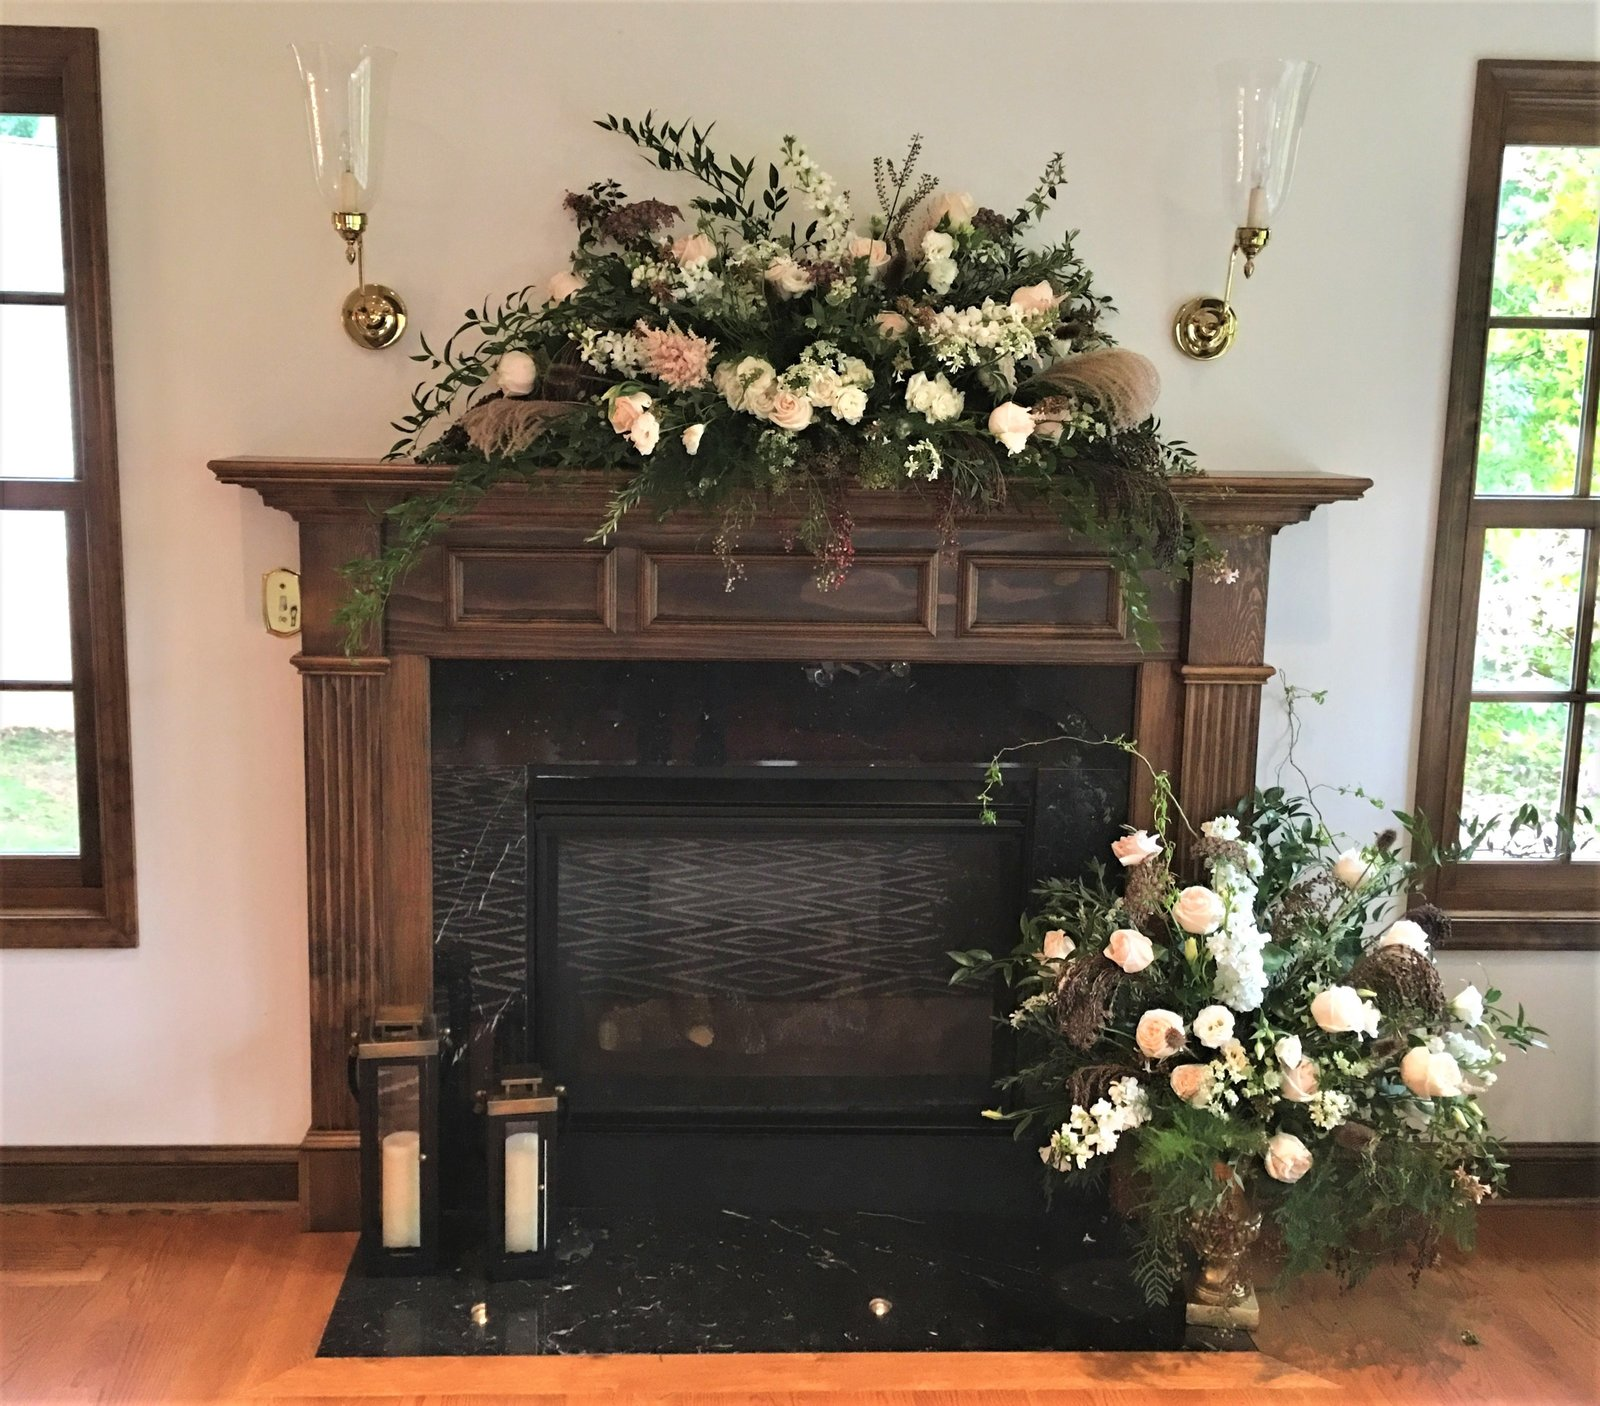 Mantel and fireplace floral decor for wedding in a home in Vienna, VA